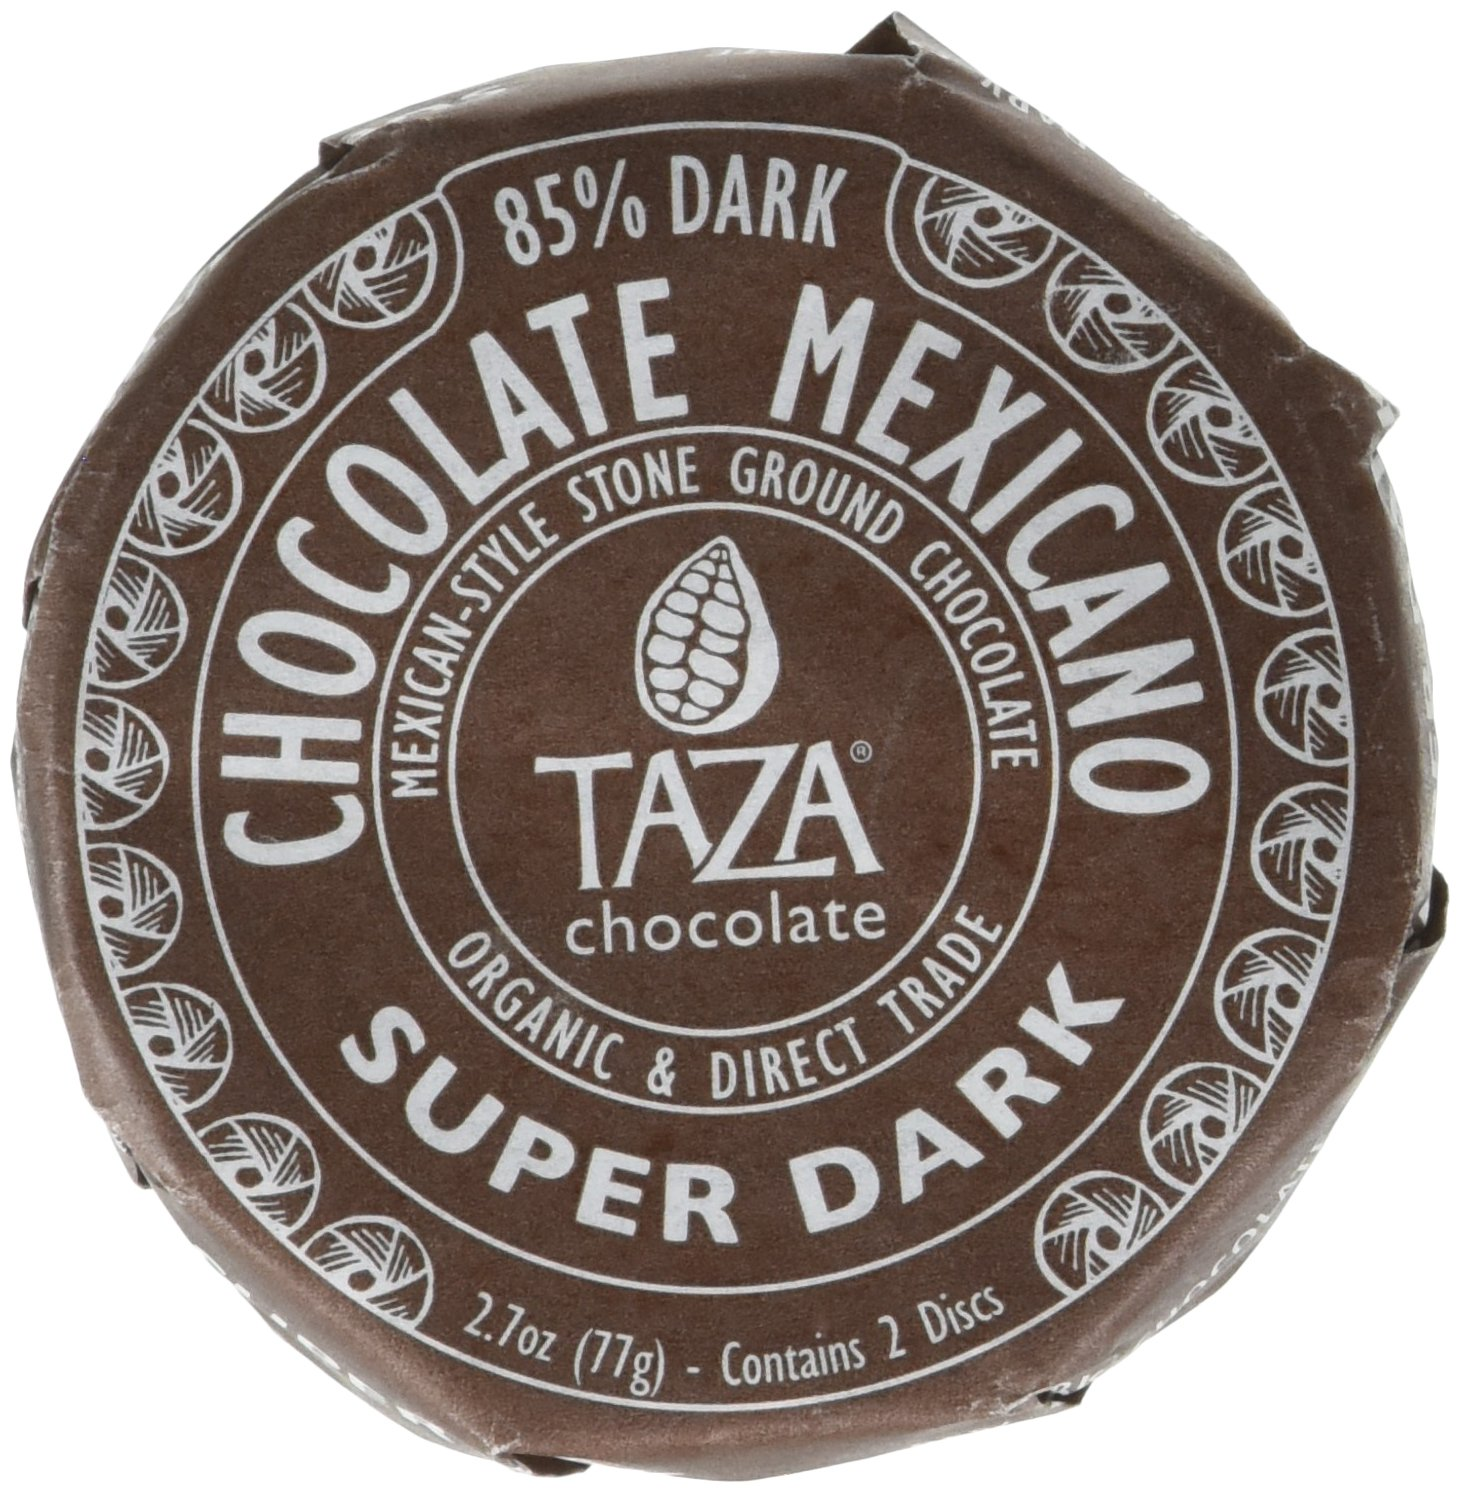 Taza Organic Chocolate Mexicano Super Dark Disc 85% Dark, 2.7 oz